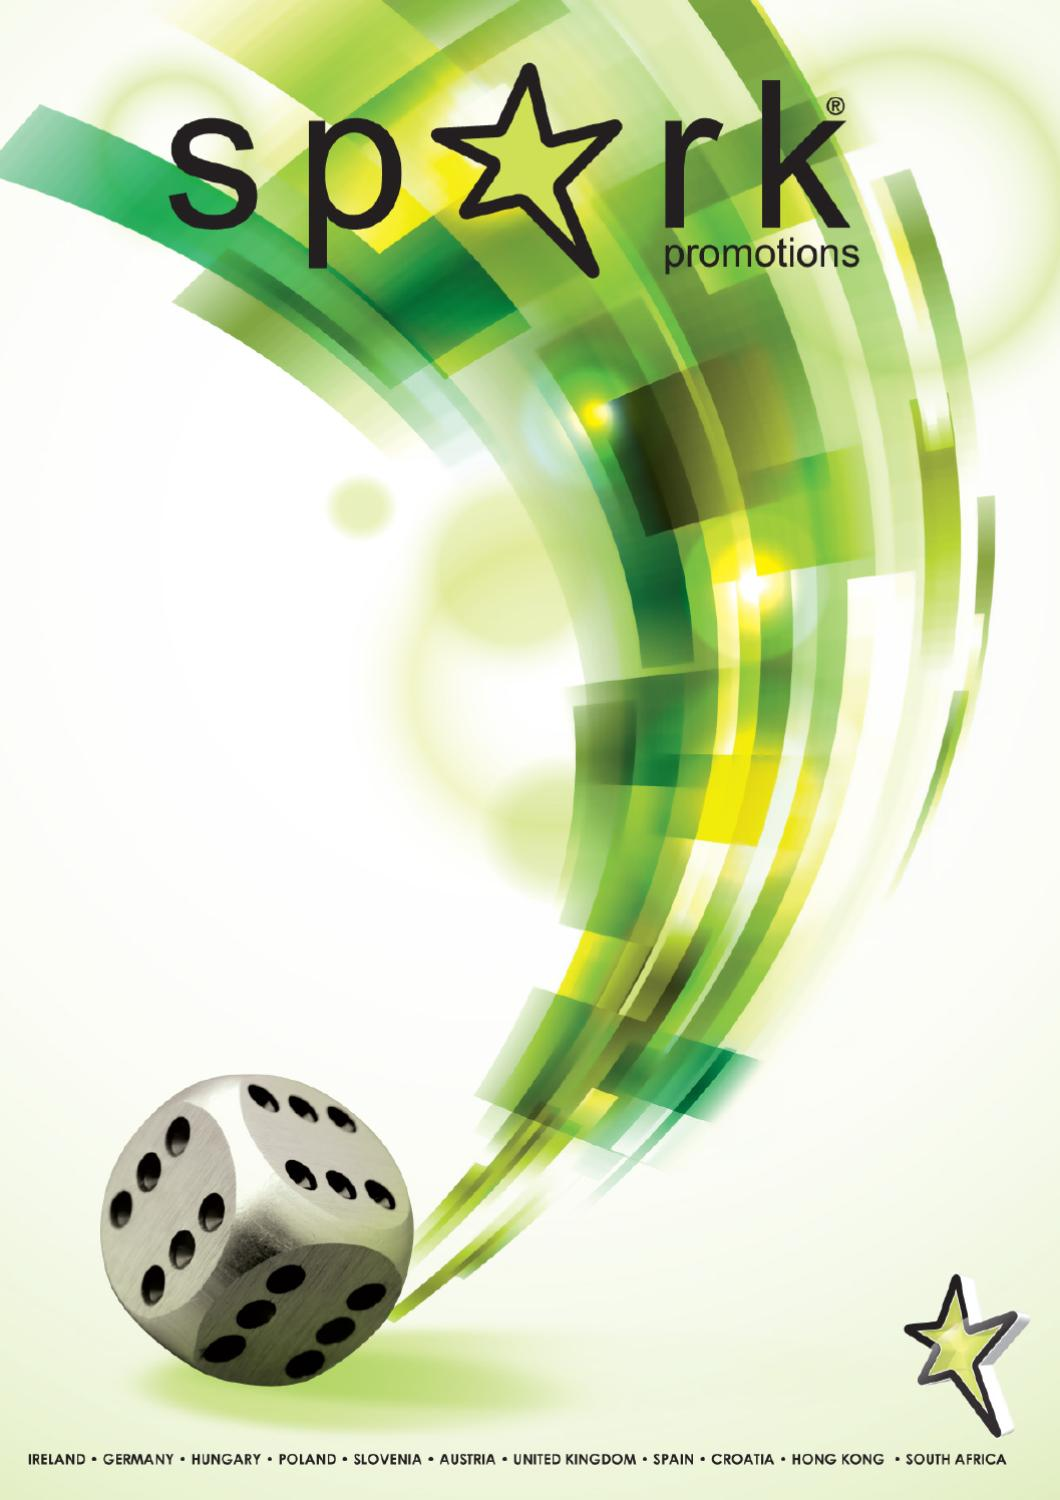 Spark Promotions 2012 by Spark Promotions - issuu e2c60c2bbc